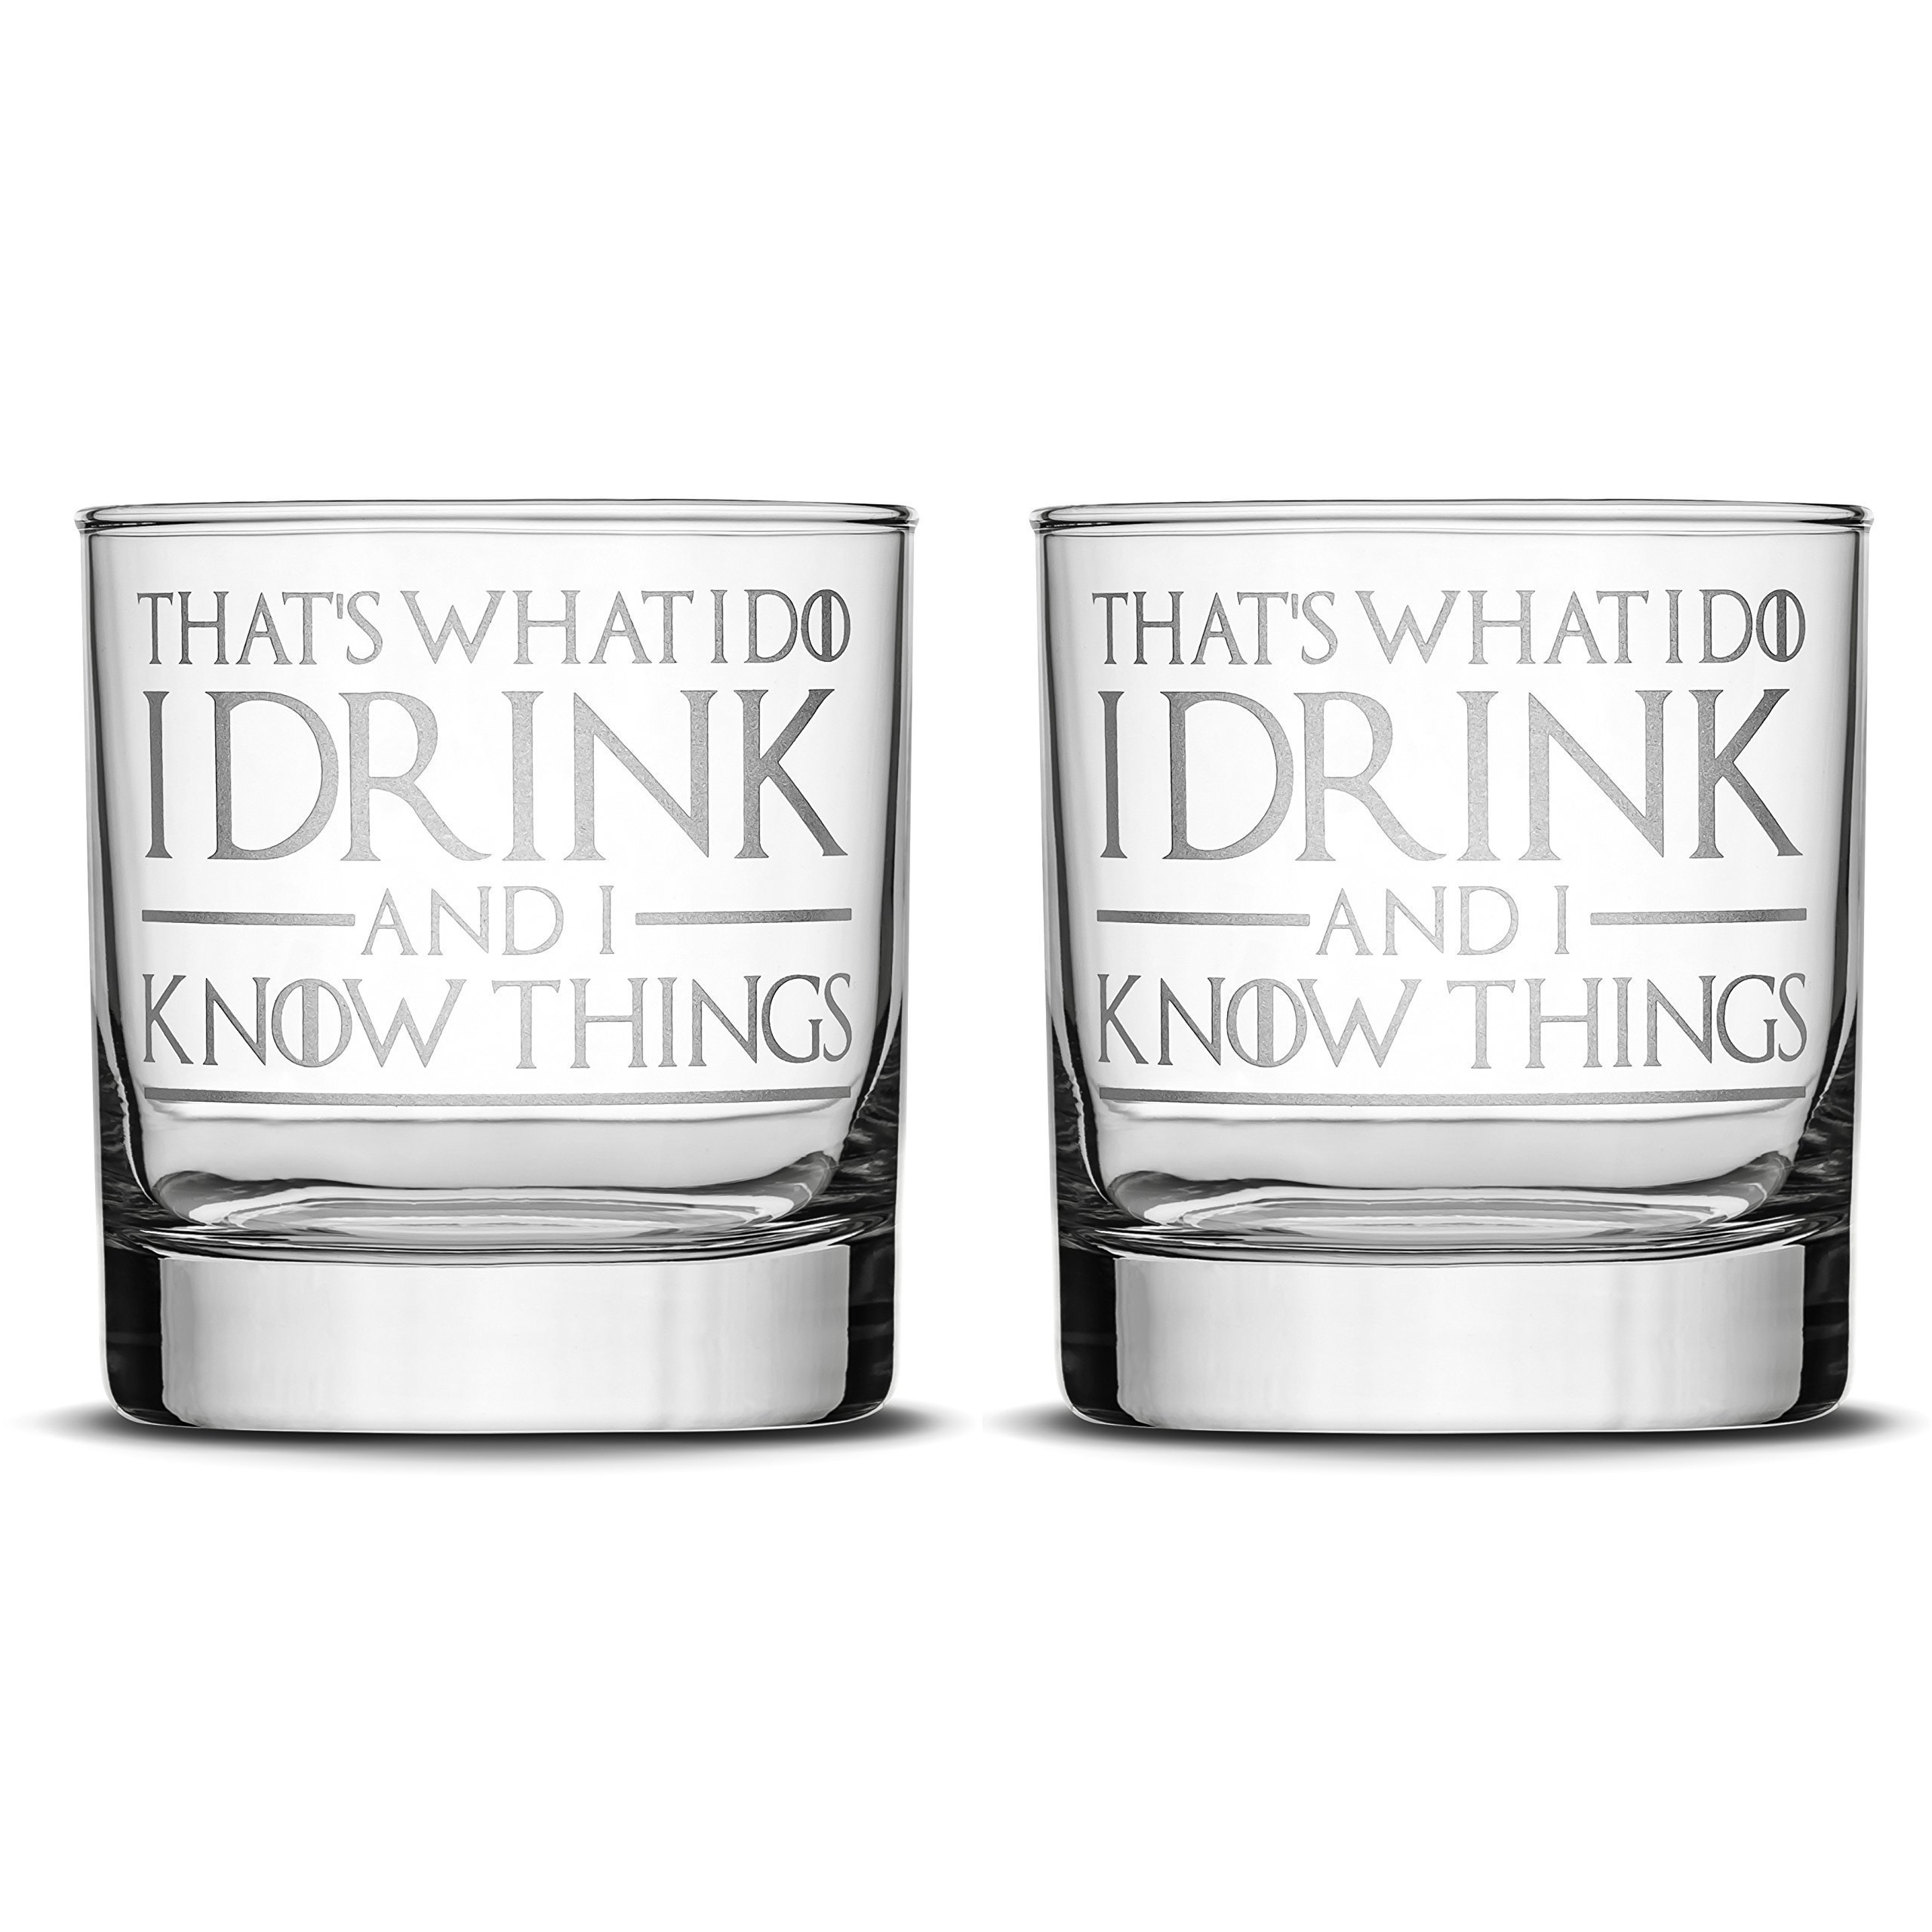 Premium Game of Thrones Whiskey Glasses, Set of 2, Thats What I Do I Drink and I Know Things, Hand Etched 10oz Rocks Glass, Made in USA, Highball Gifts, Sand Carved by Integrity Bottles